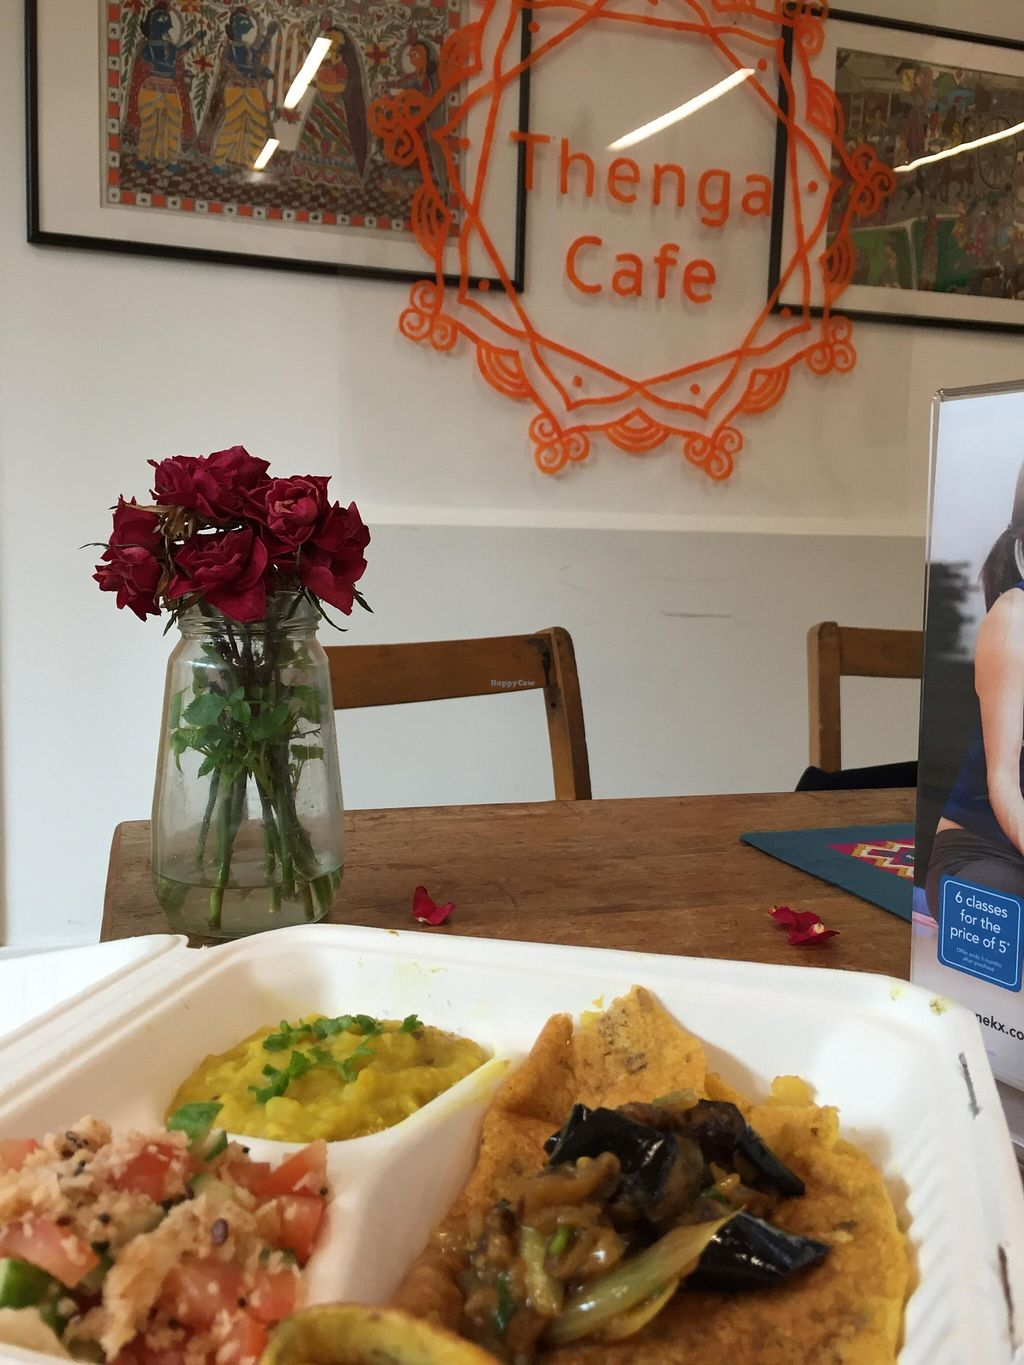 "Photo of Thenga Cafe  by <a href=""/members/profile/Jaxkarin"">Jaxkarin</a> <br/>Yummy dosa day at Thenga Cafe. Vegan and gluten free!  <br/> March 31, 2016  - <a href='/contact/abuse/image/71286/142016'>Report</a>"